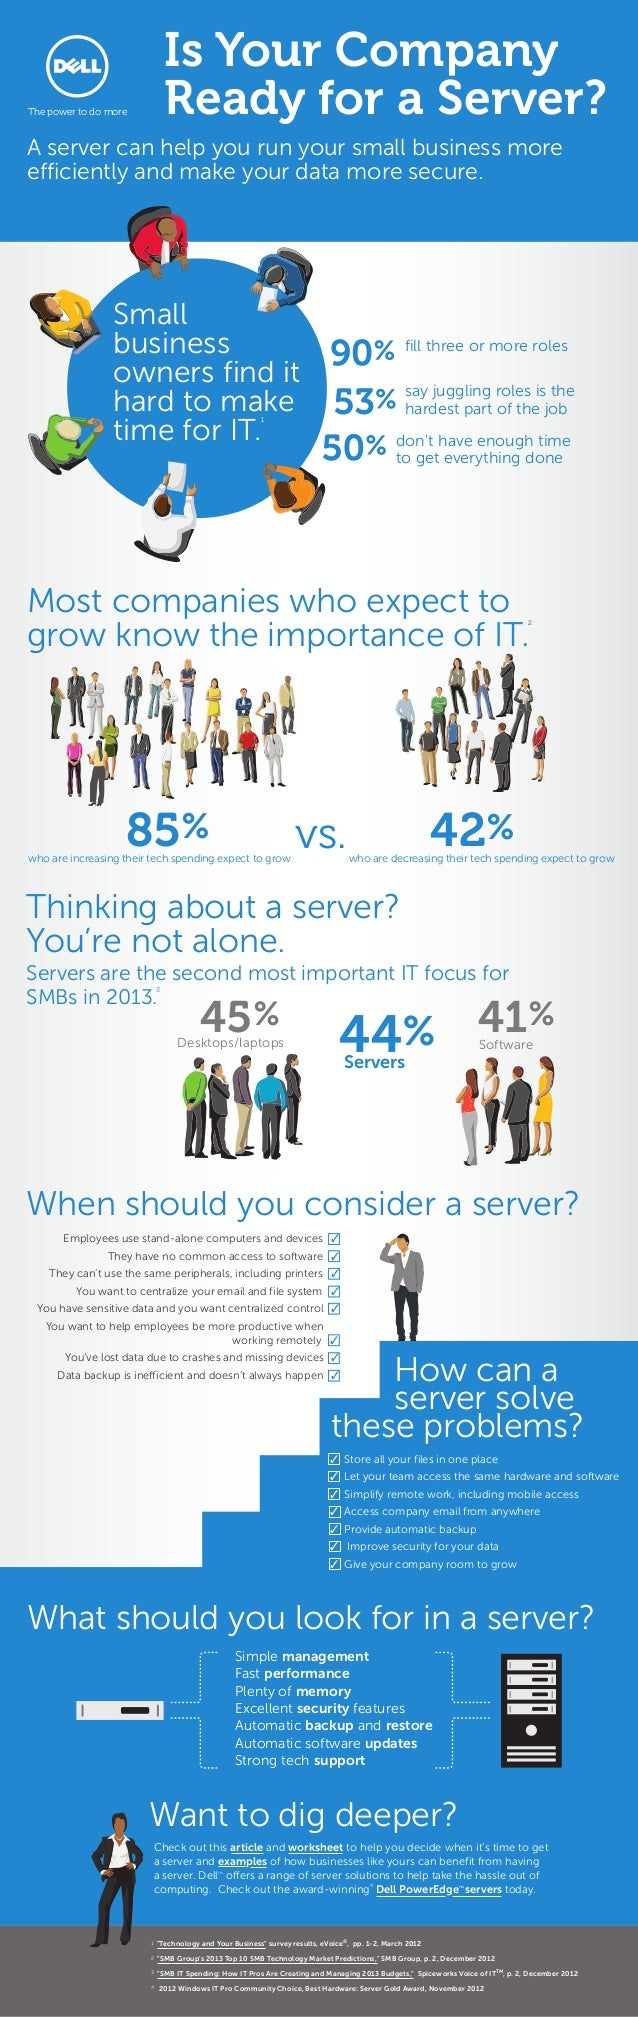 Is Your Company Ready for a Server?